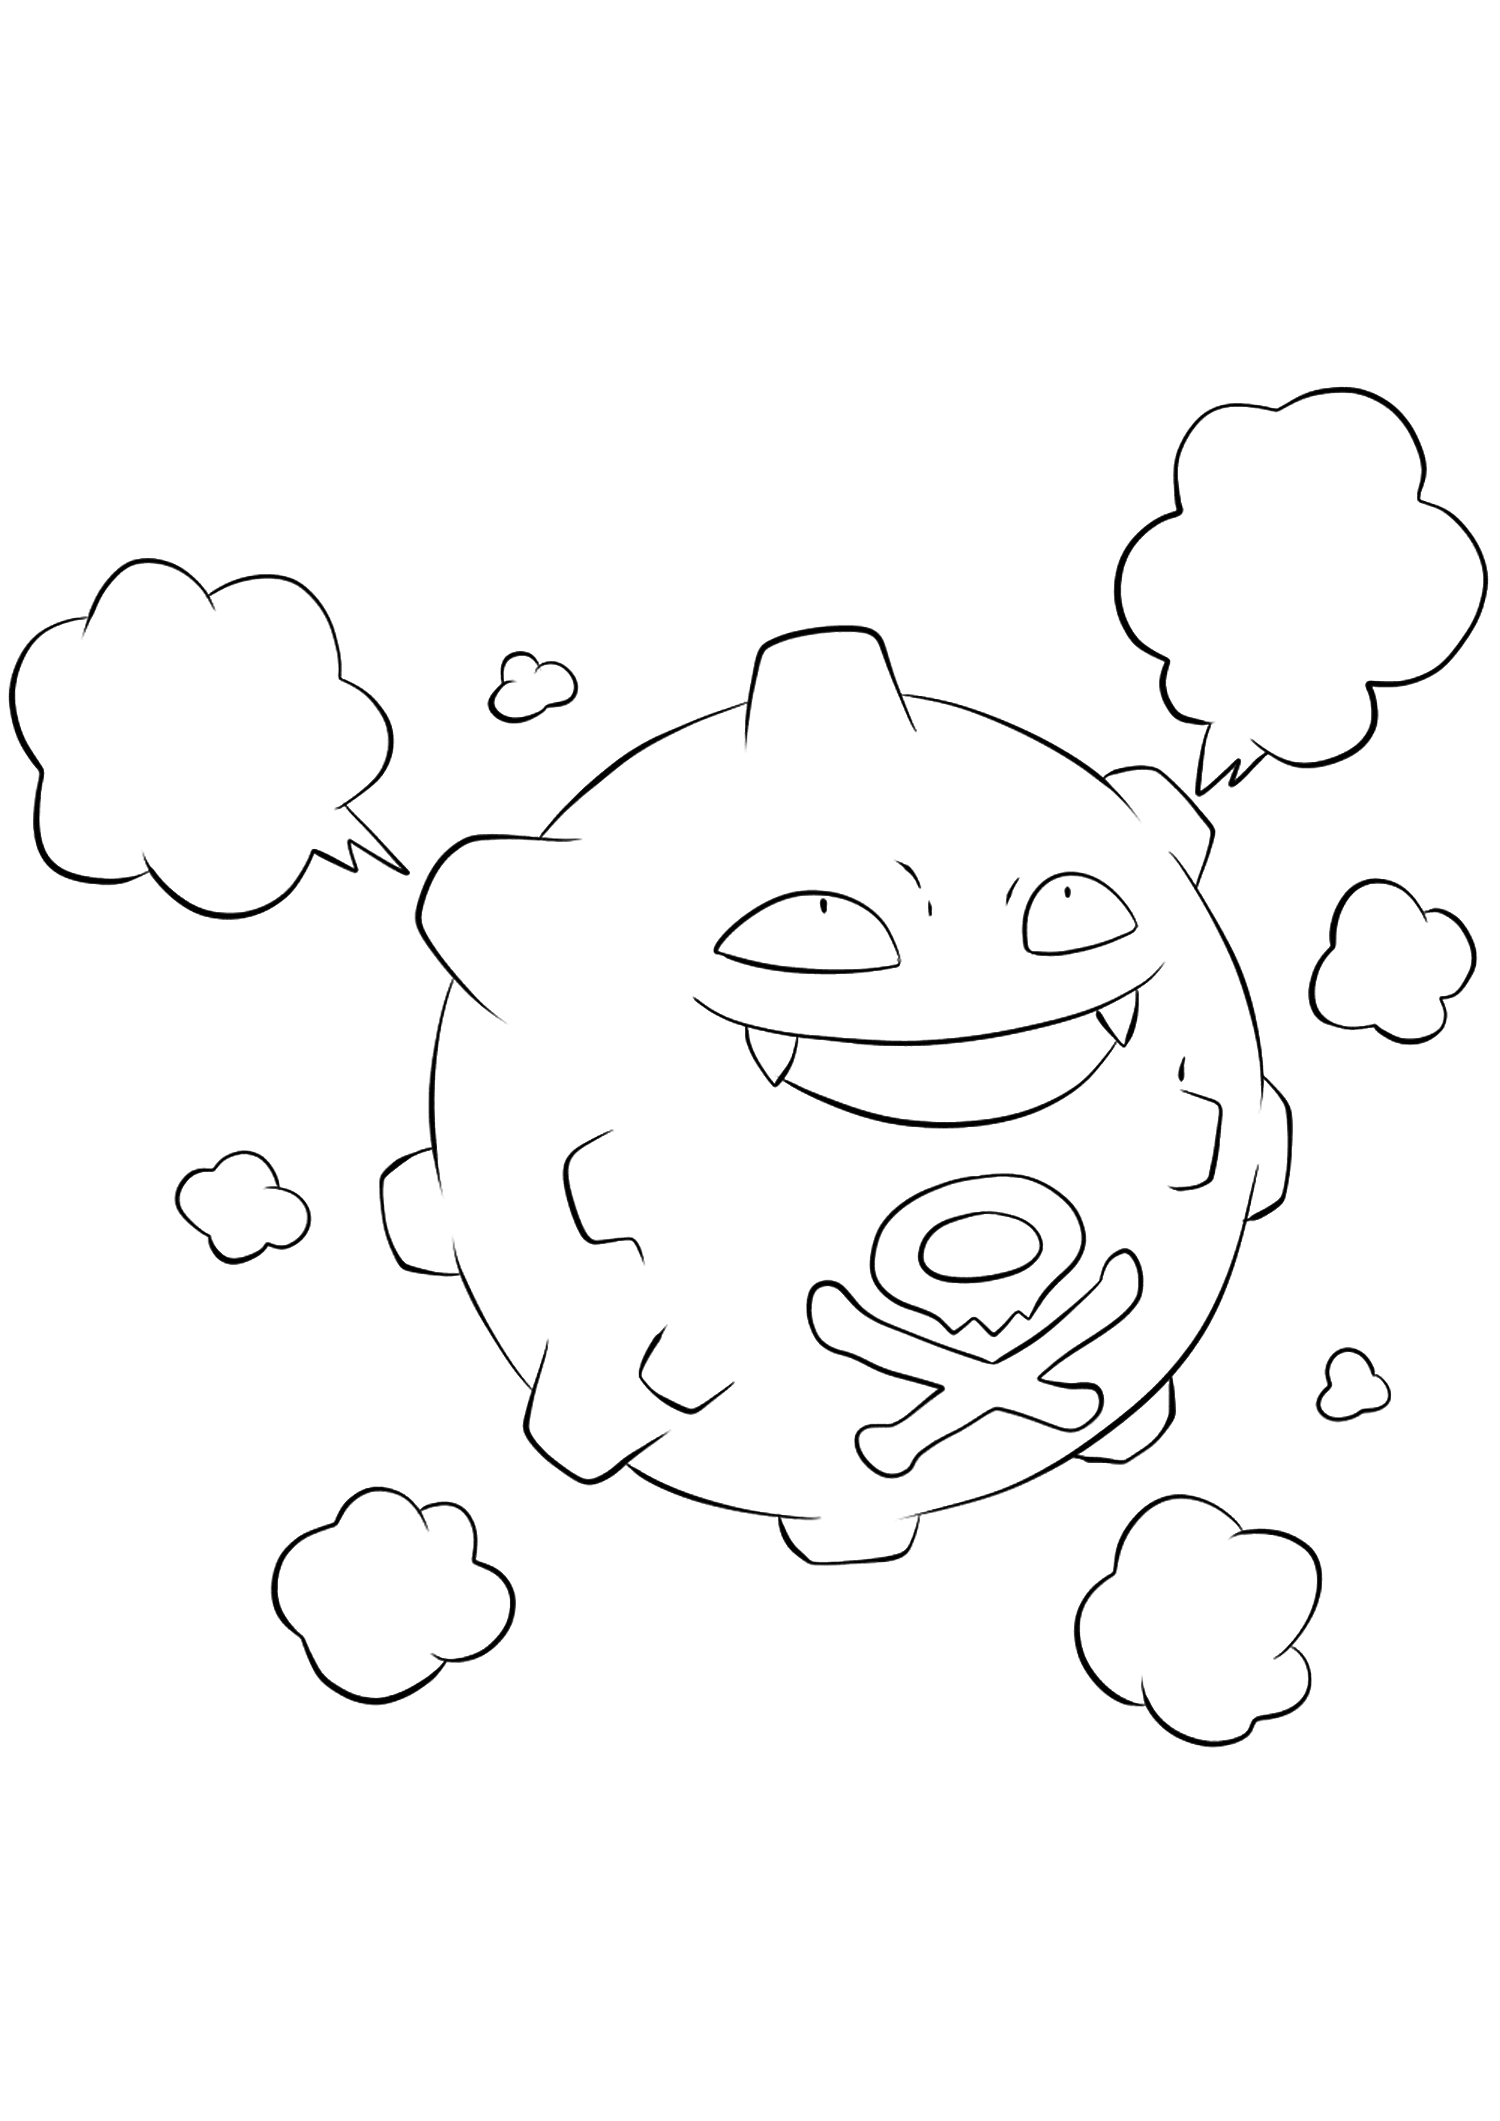 koffing pokemon coloring page koffing coloring page pokemon coloring koffing page